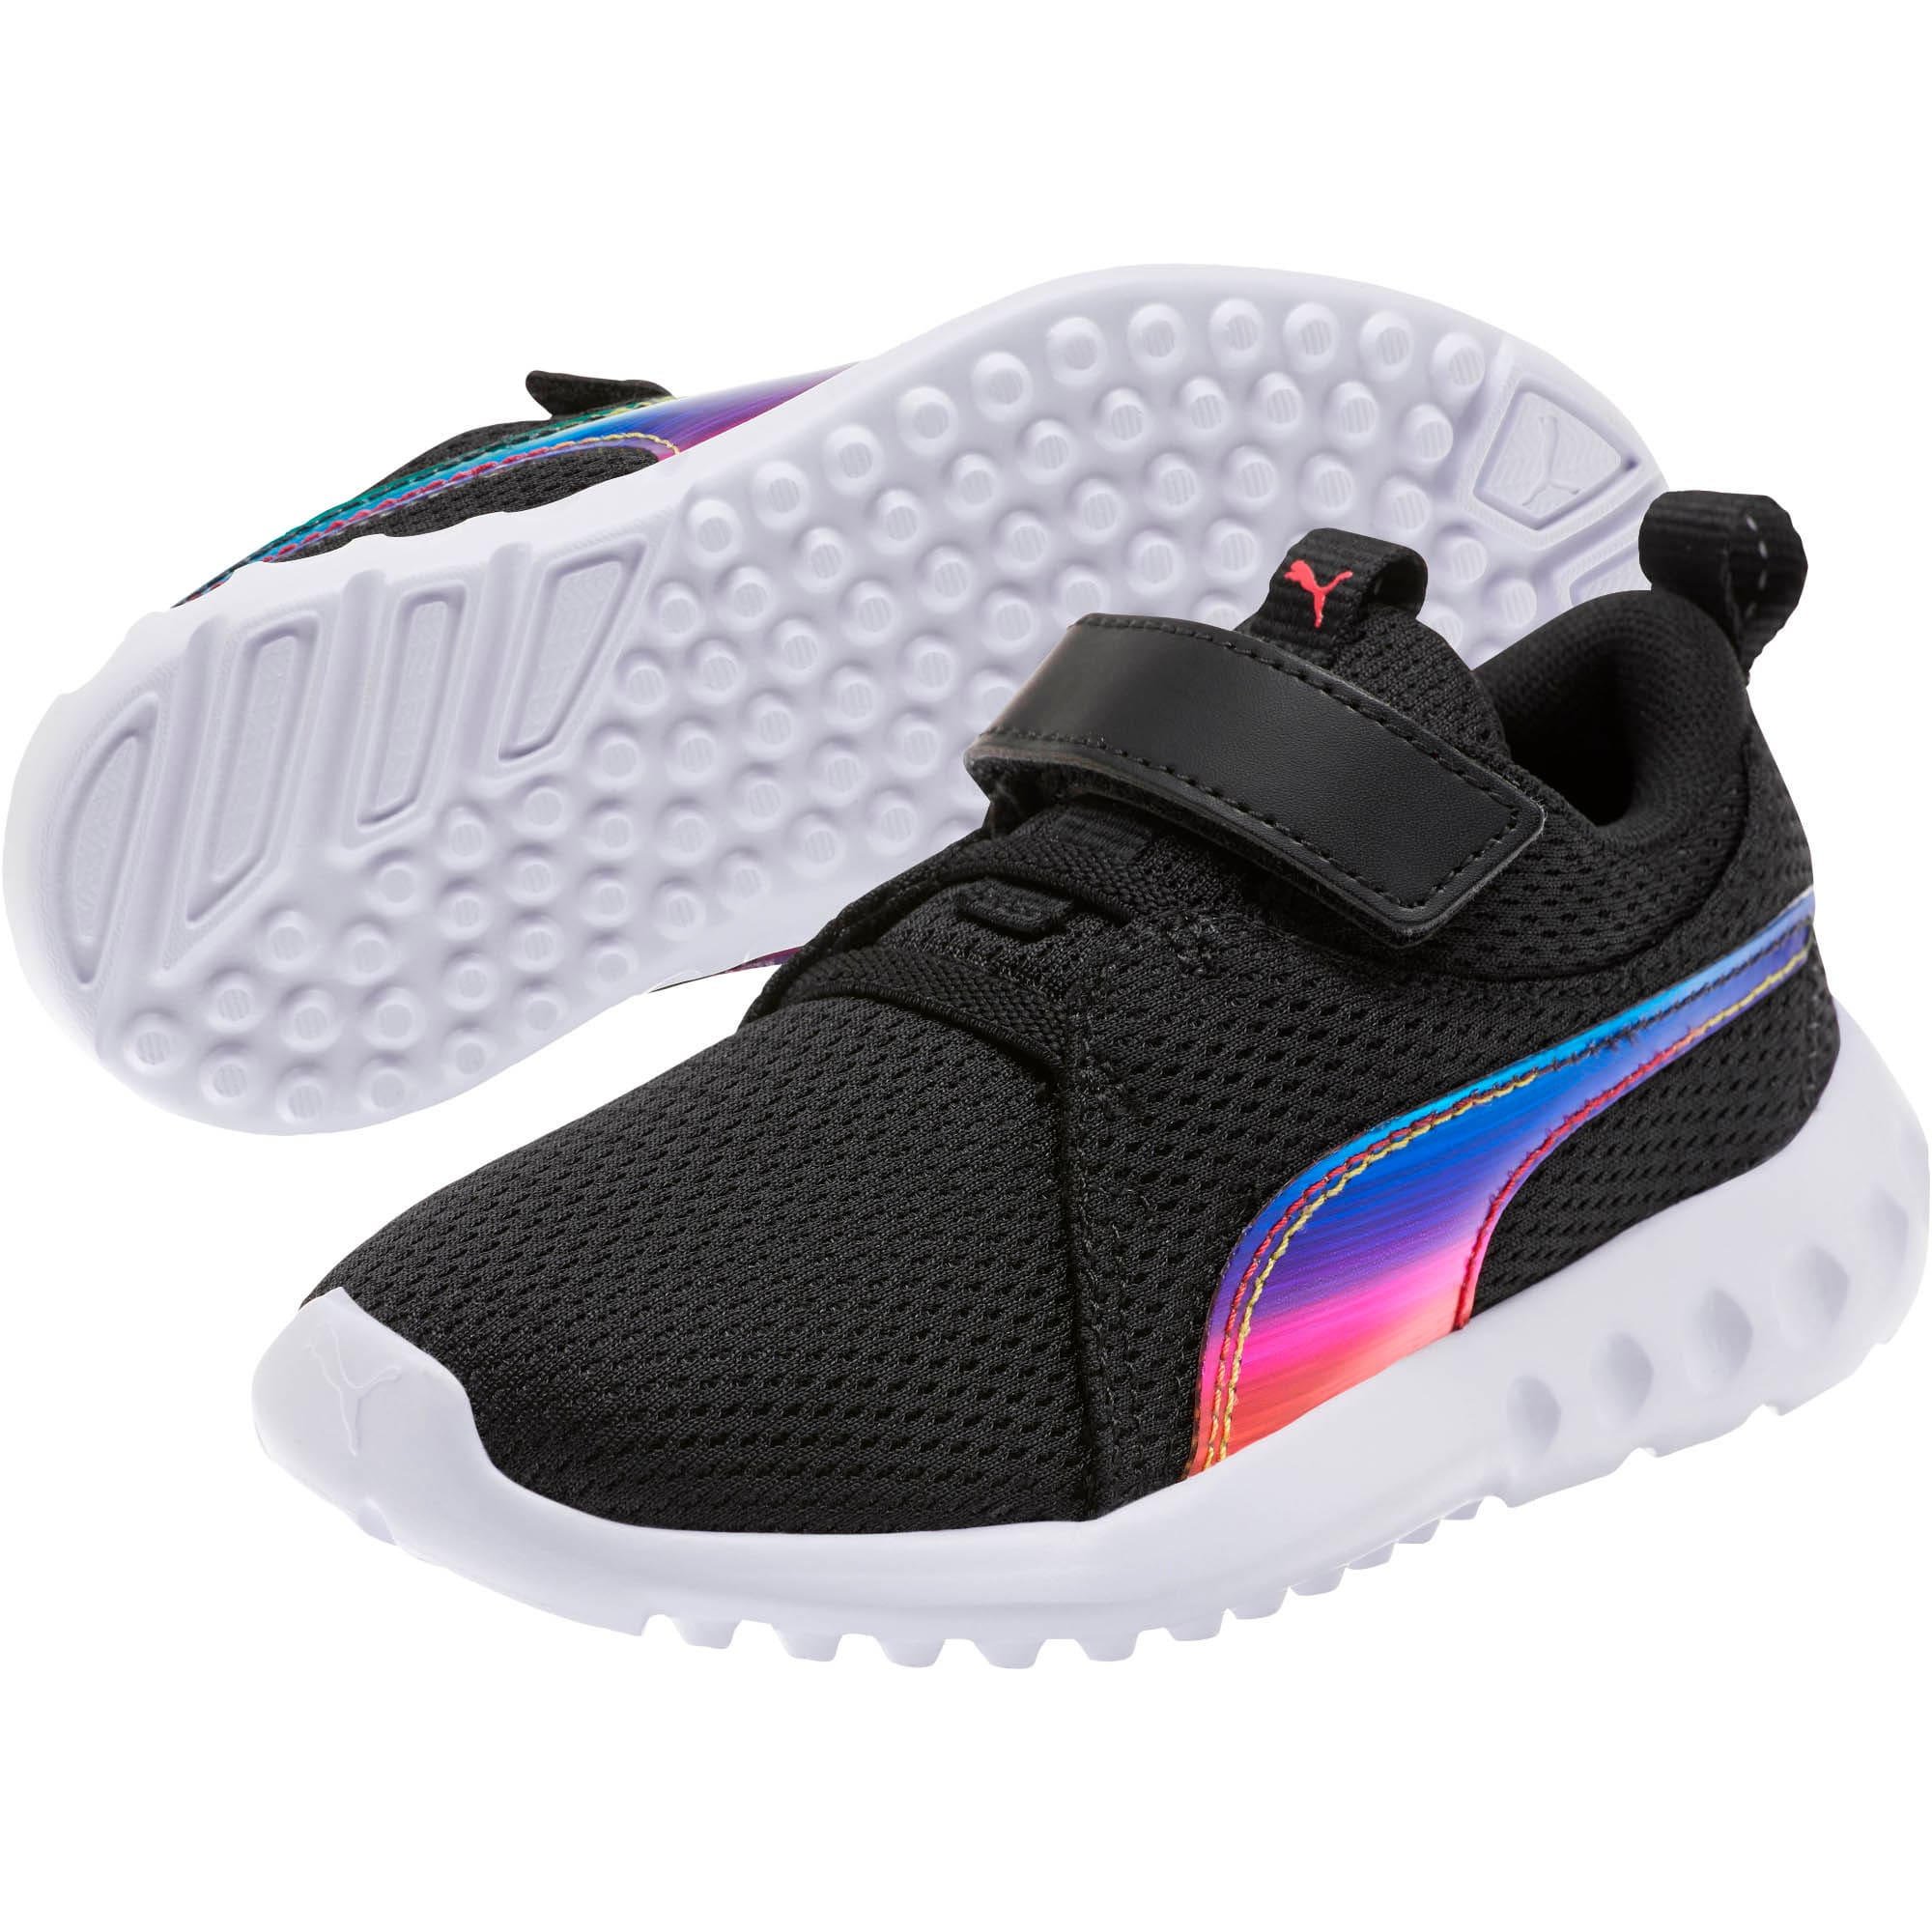 Thumbnail 2 of Carson 2 Iridescent Little Kids' Shoes, Puma Black-Puma White, medium